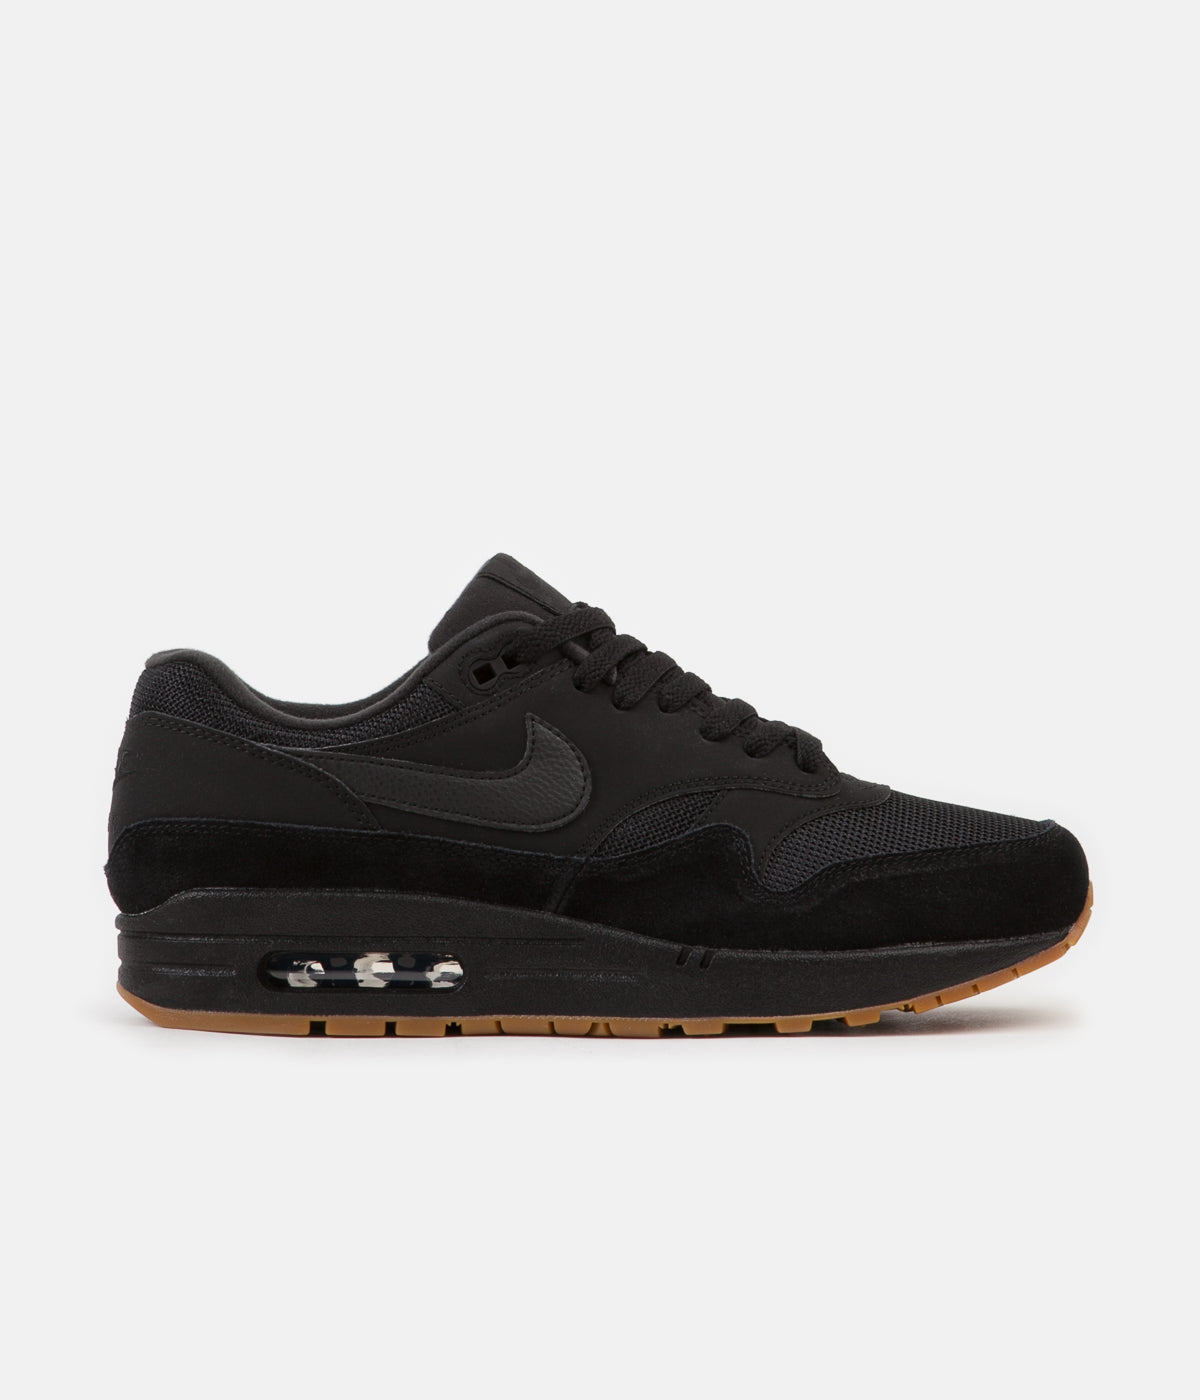 new styles af224 39d12 Nike Air Max 1 Shoes - Black   Black - Black - Gum Med Brown   Always in  Colour